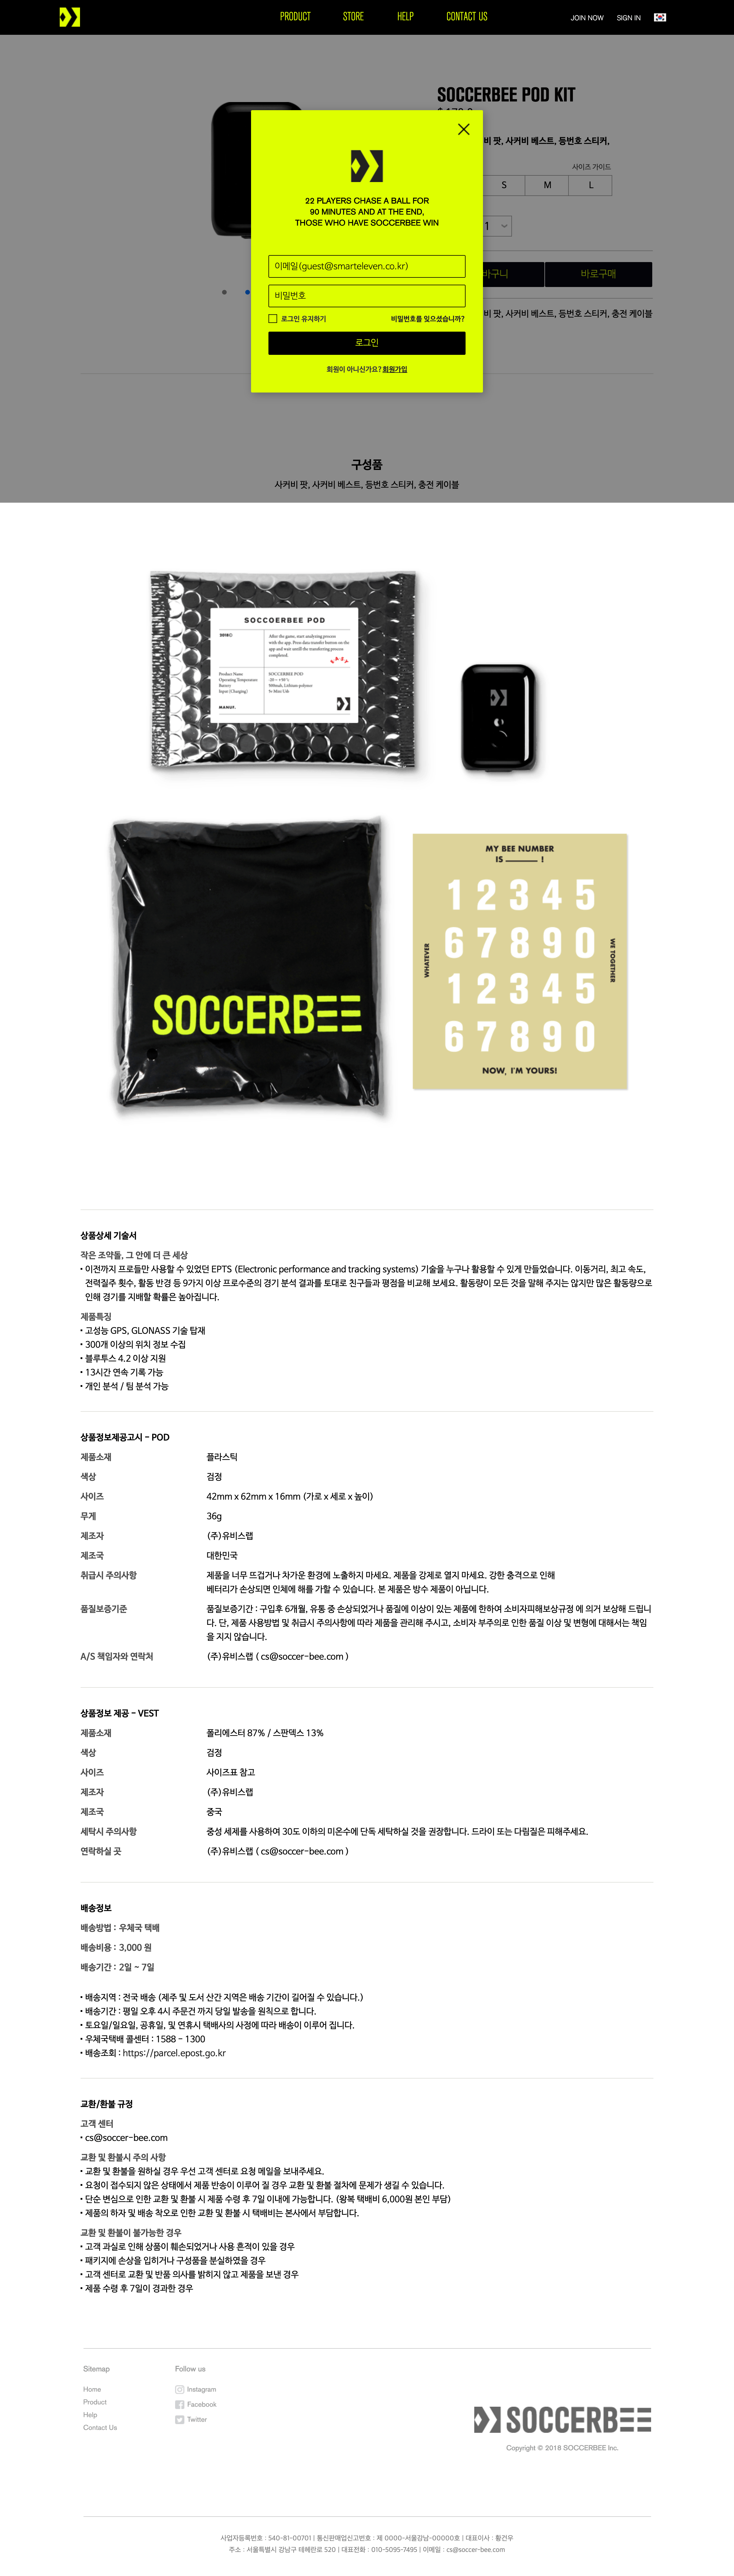 D4c7e6f2 1e0d 4863 ac30 a51d9b0e4c2ascreencapture soccer bee products 1 2019 06 06 17 06 10.png